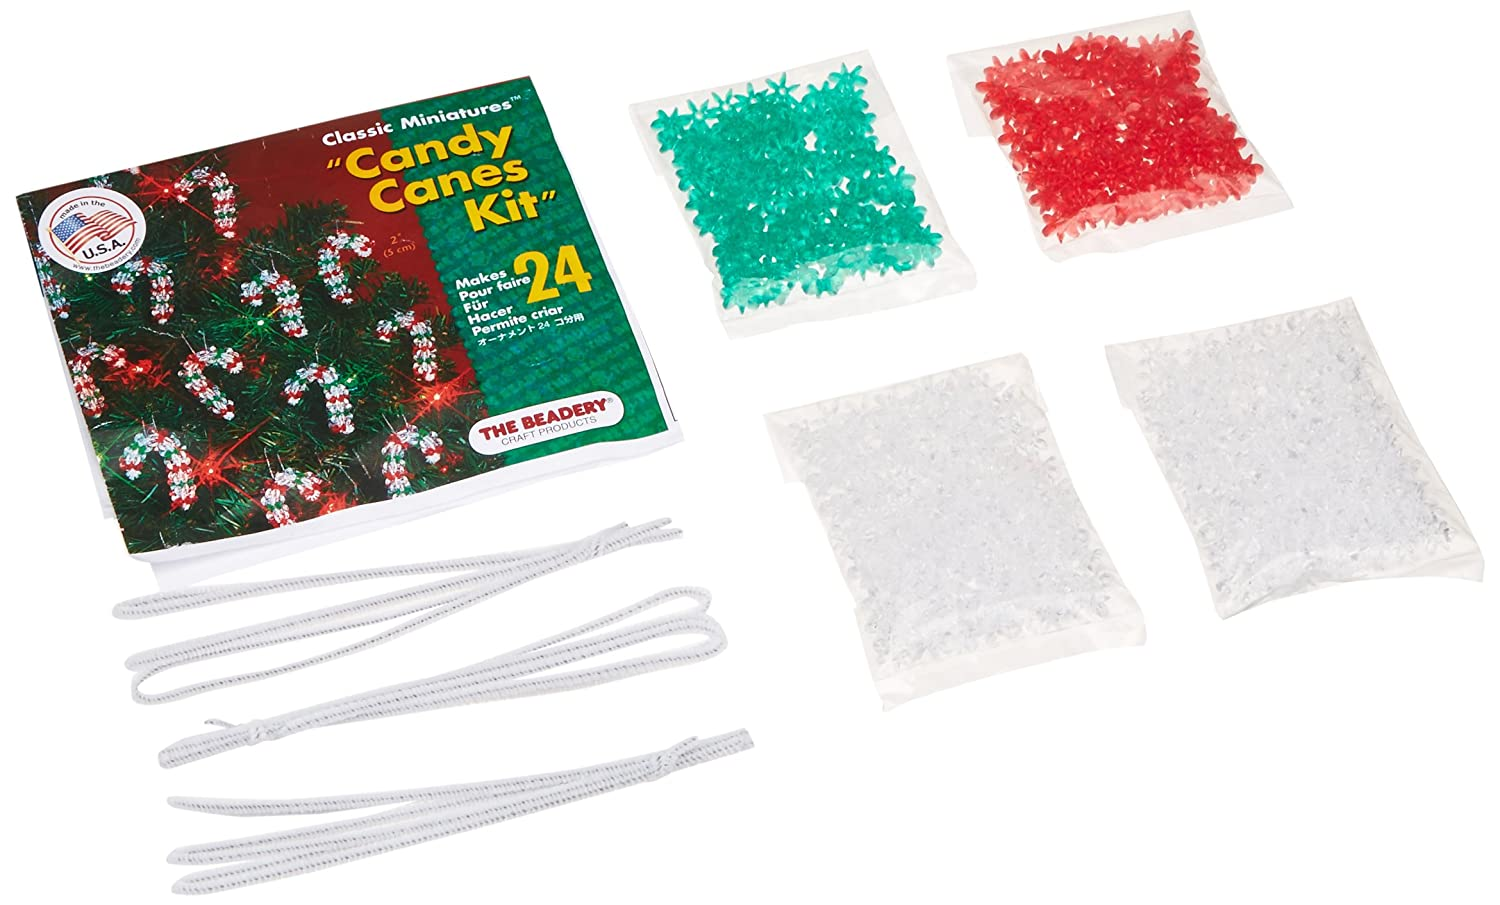 Beadery Holiday Beaded Ornament Kit, 2-Inch, Mini Candy Canes, Makes 24 Ornaments BOK-5501